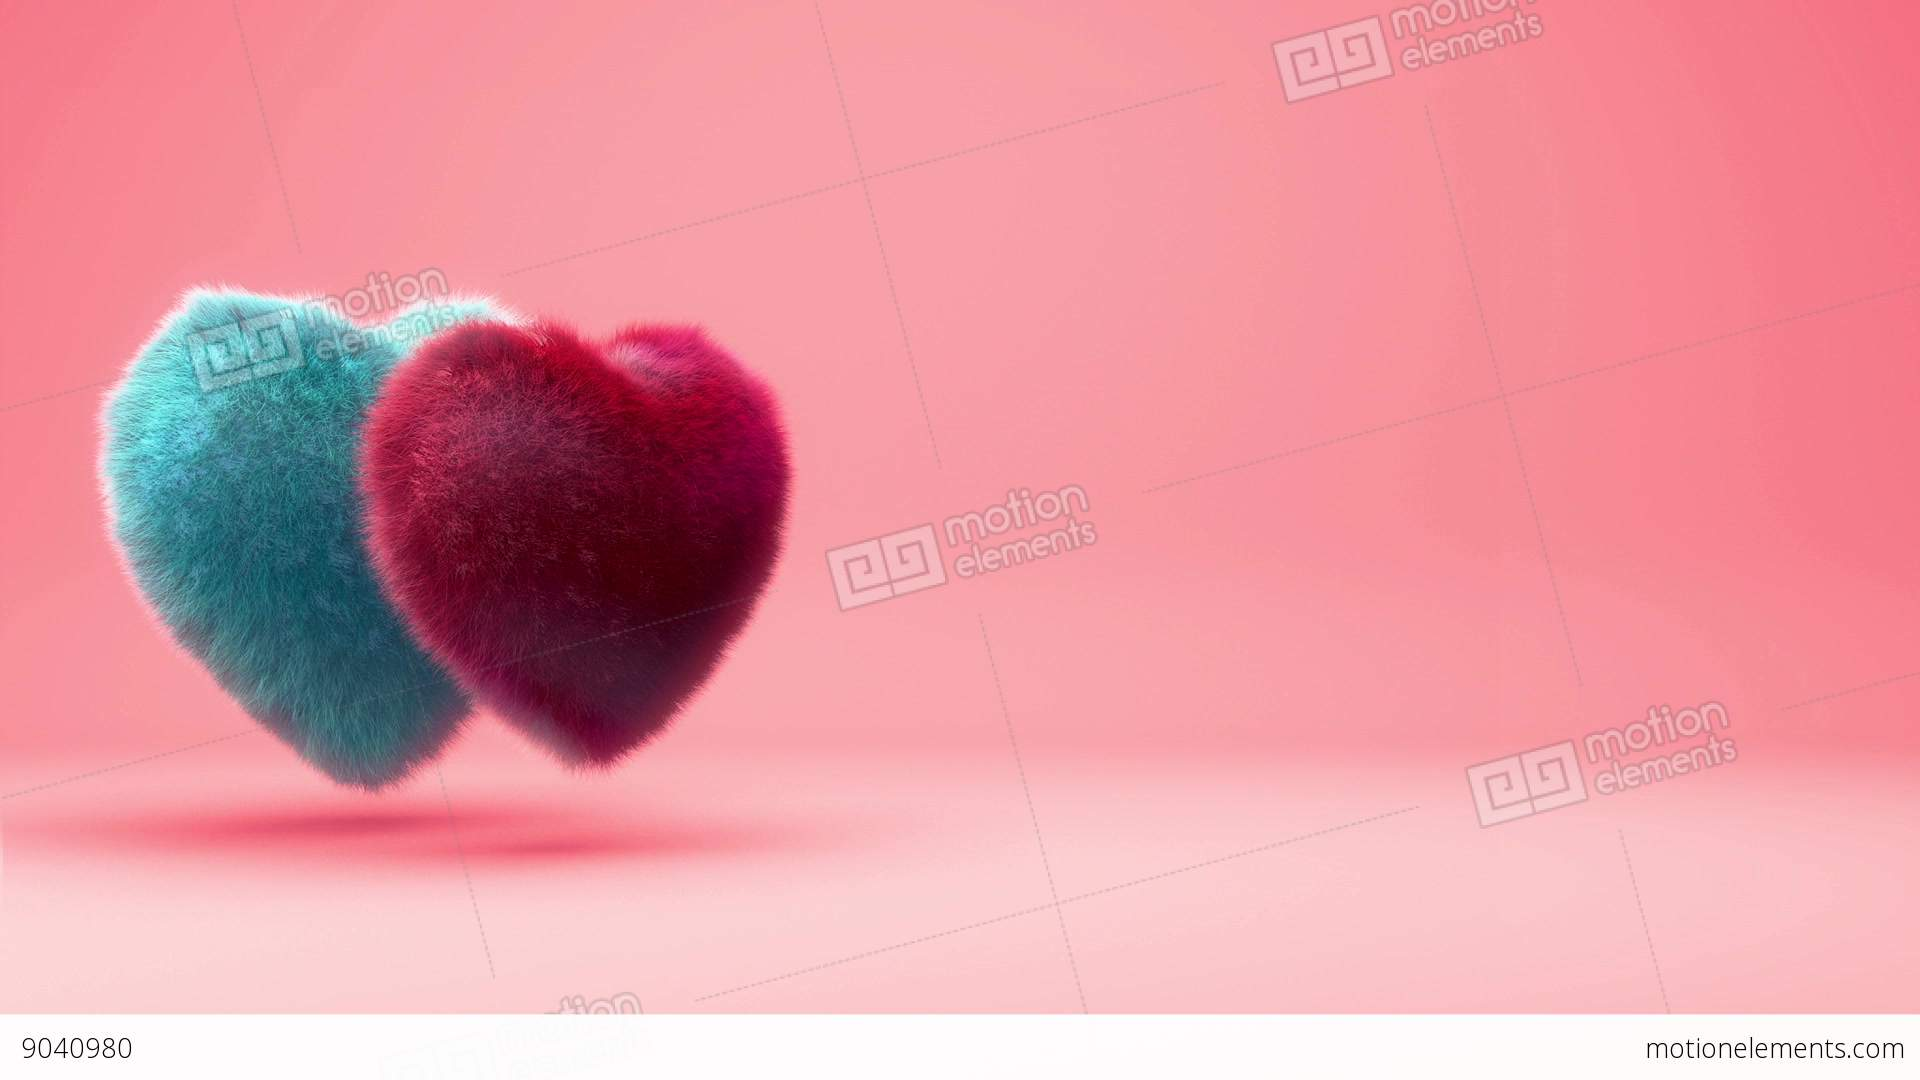 Hairy Hearts Background Animation For Valentines Day And Wedding